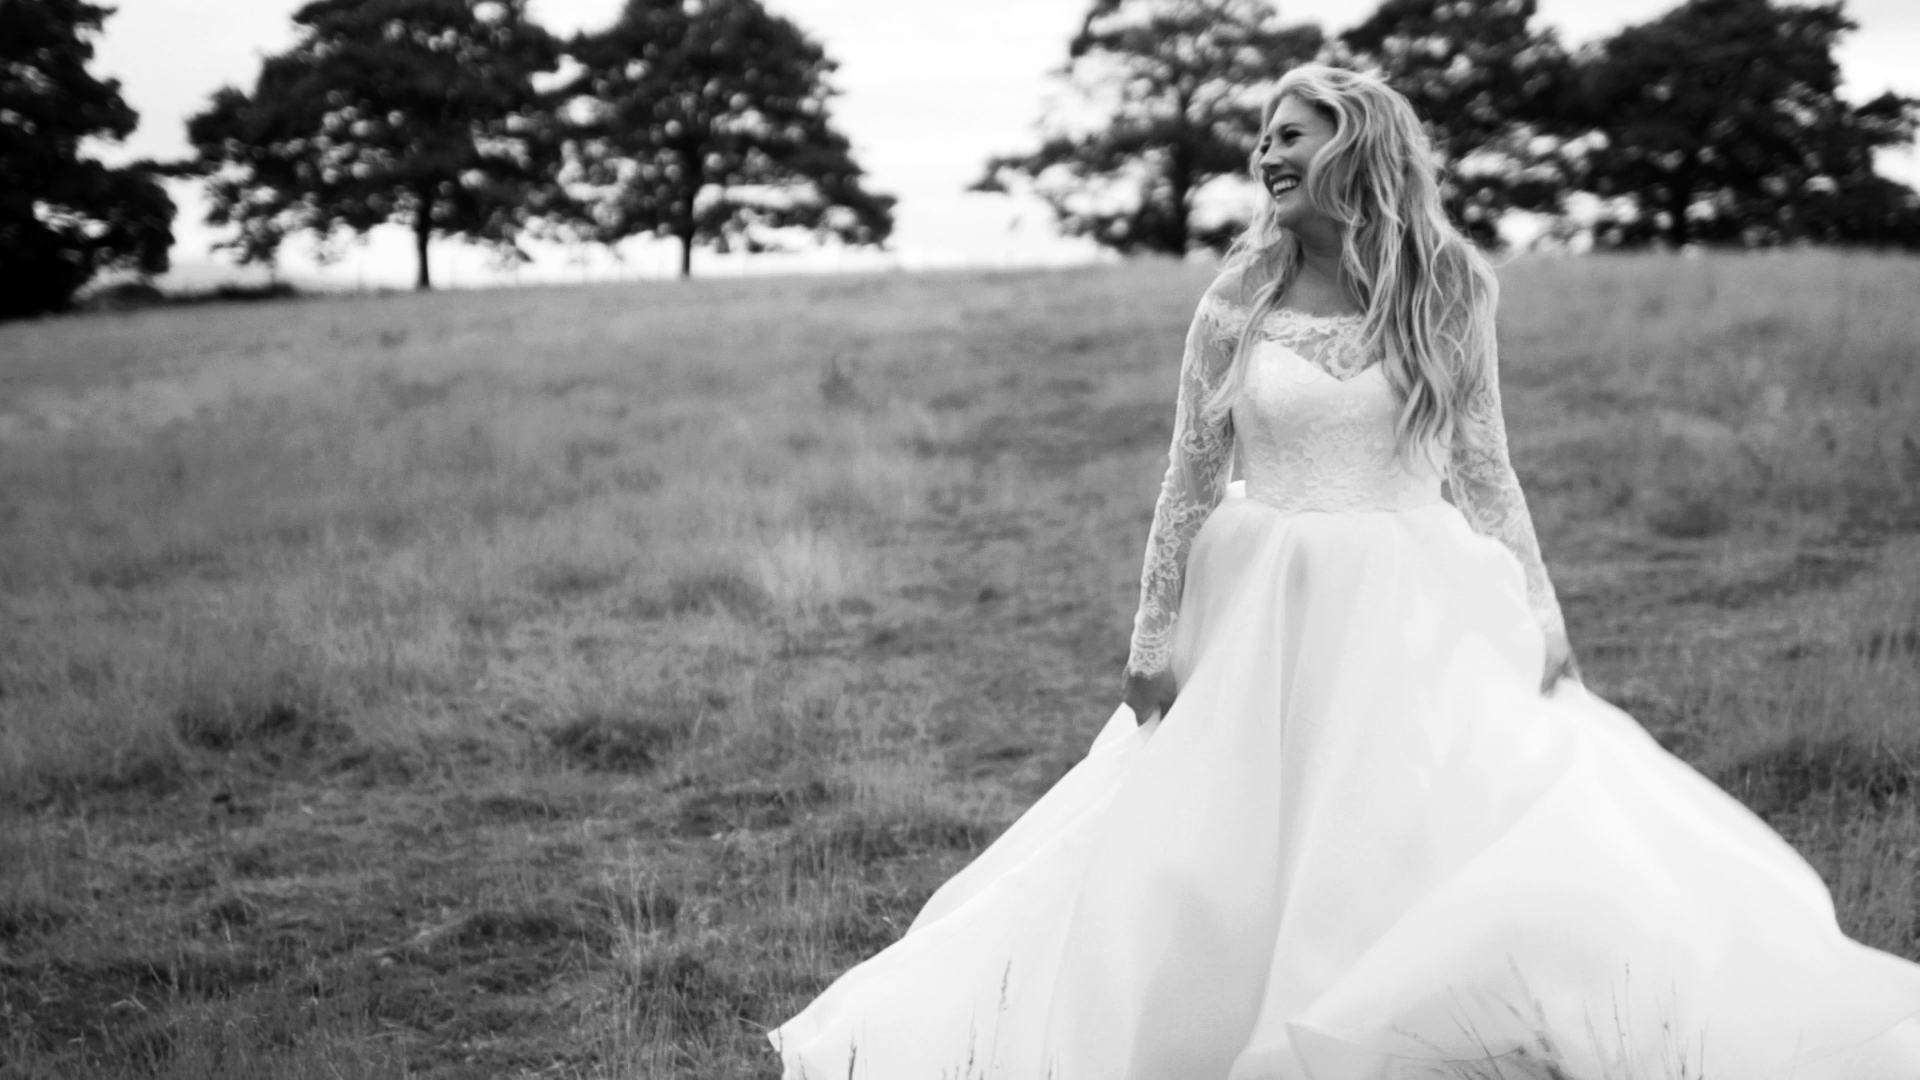 Kendra designer wedding dress by Caroline Castigliano